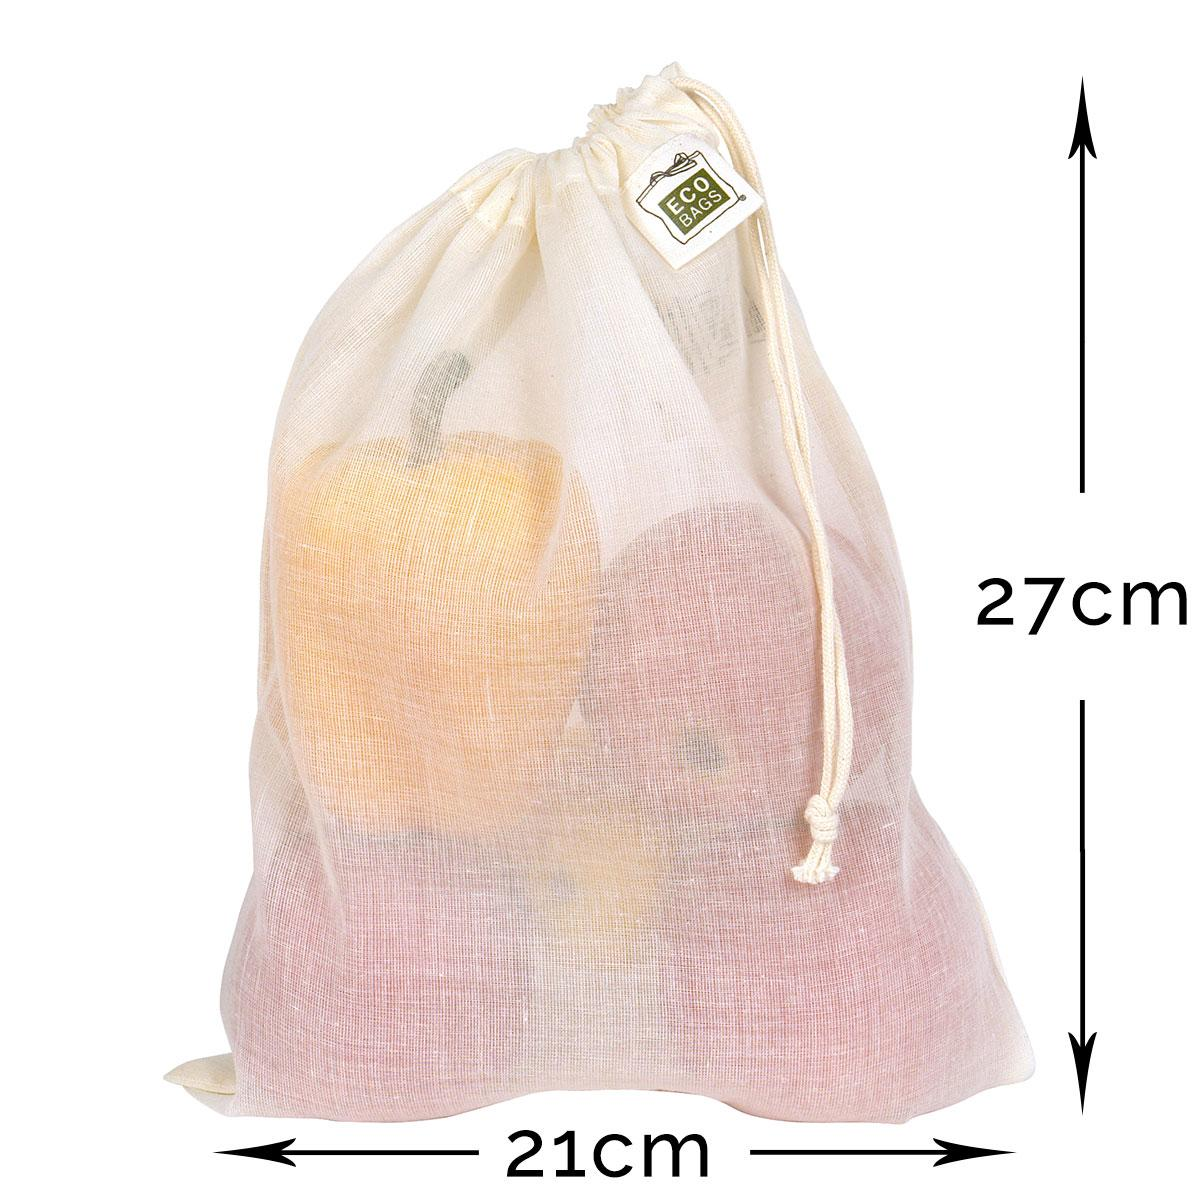 ECOBAGS Natural Cotton Grocery Bag - Measurements